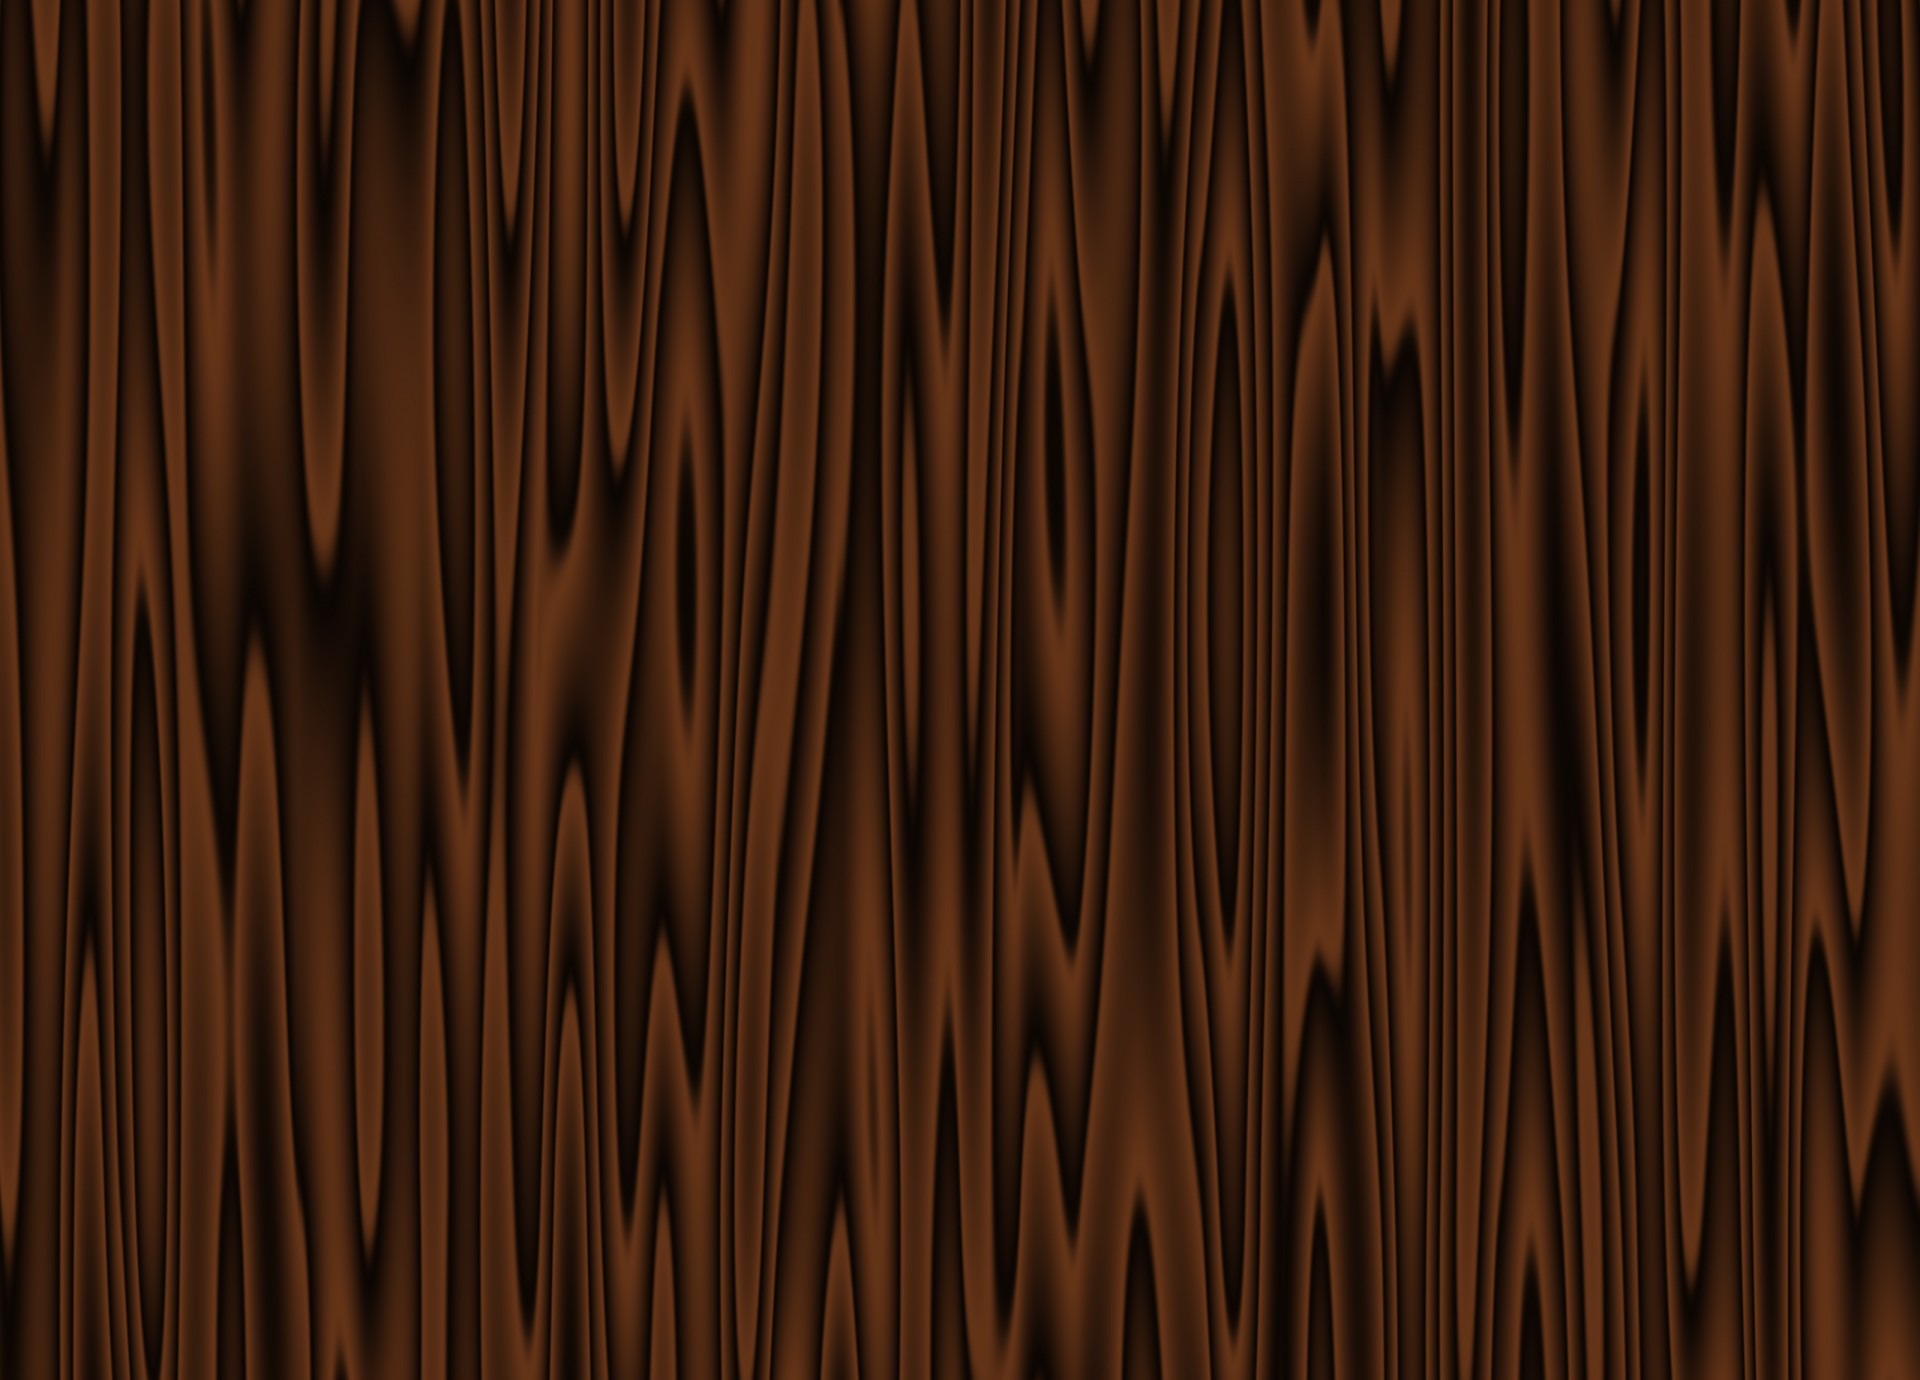 Wood Grain Effect Clipart Free Stock Photo.